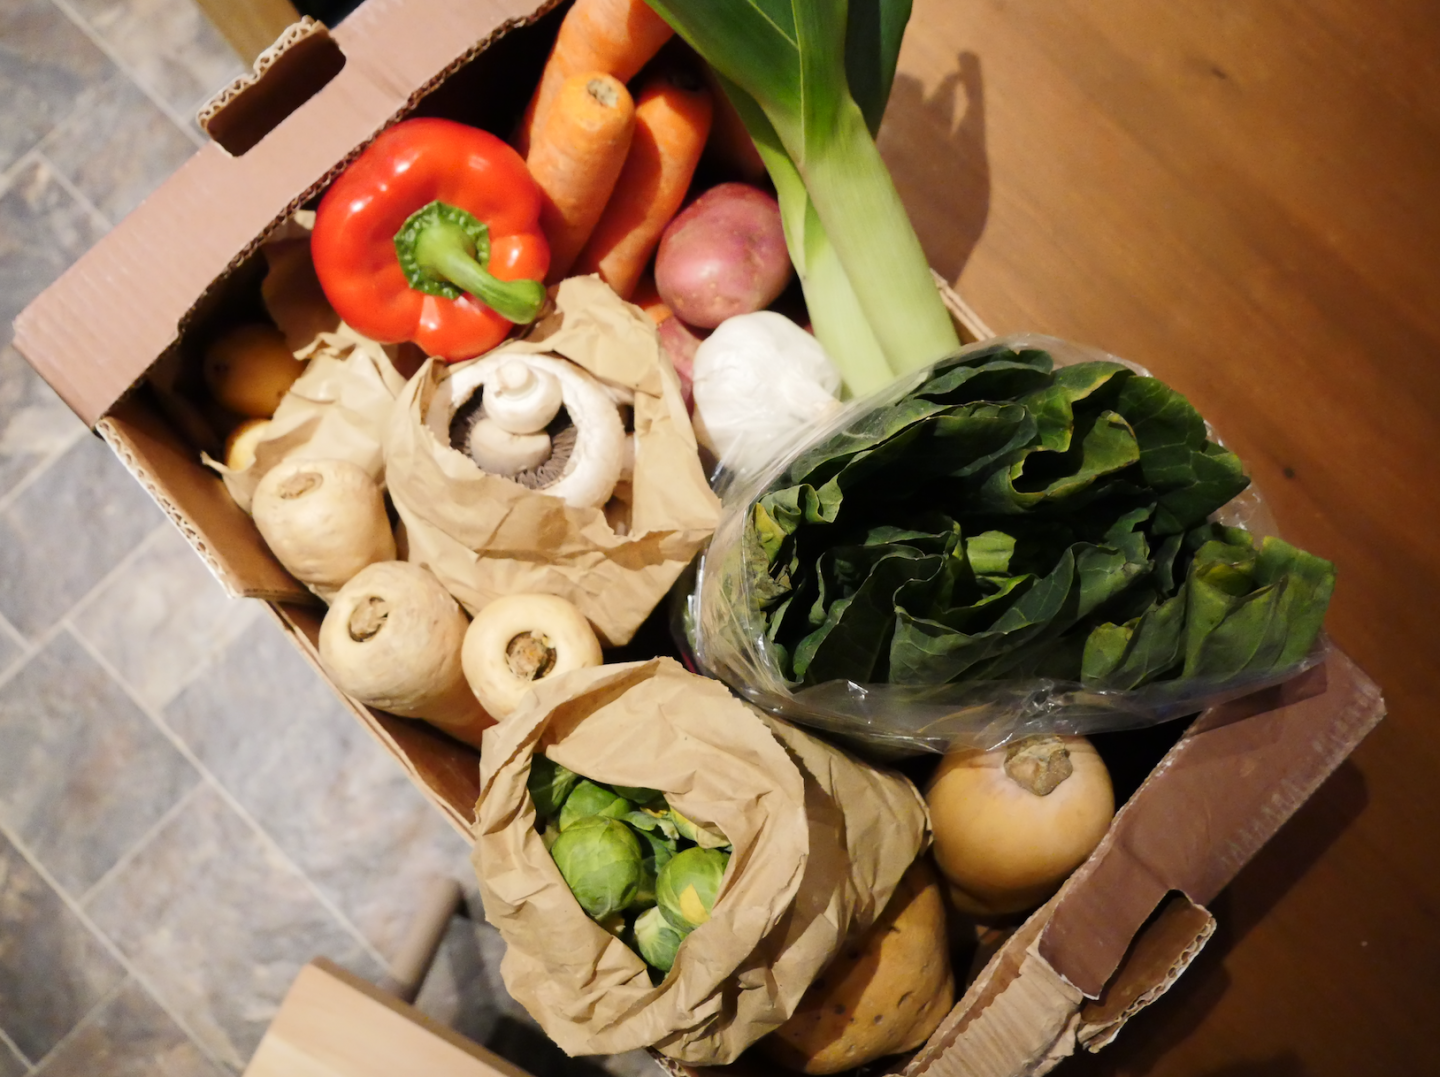 Our veg box